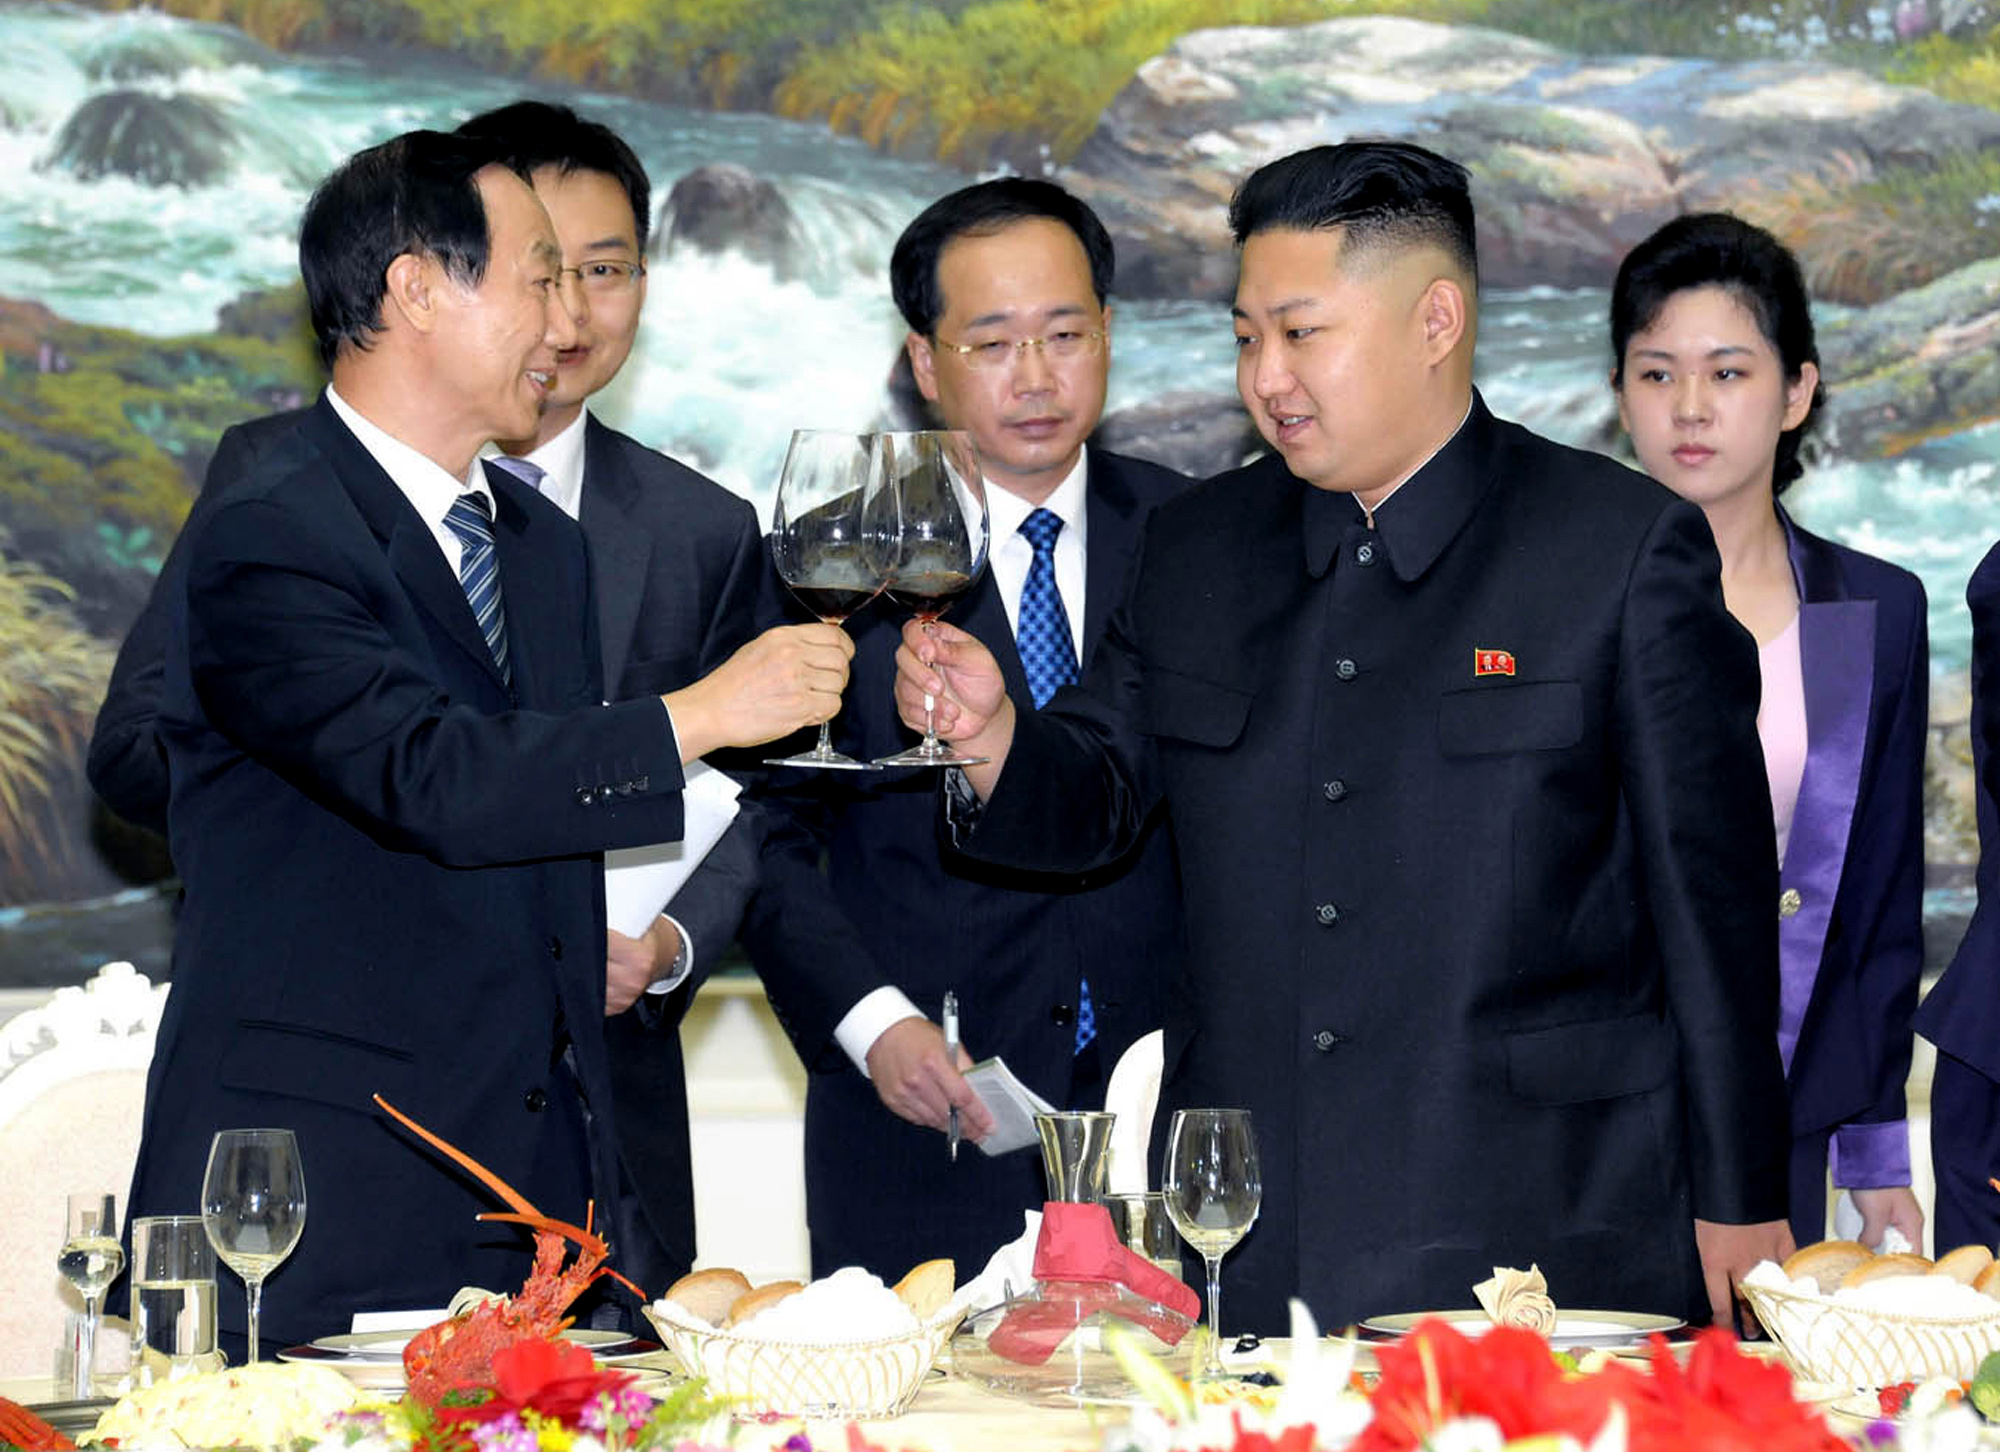 North Korean ruler Kim Jong Un, second from right, lifts a glass with Chinese Communist Party International Department head Wang Jiarui in August 2012 in Pyongyang. A former senior U.S. negotiator on Tuesday said China has yet to sufficiently use its leverage to pressure the North to accept lasting denuclearization (AP Photo/Korean Central News Agency).